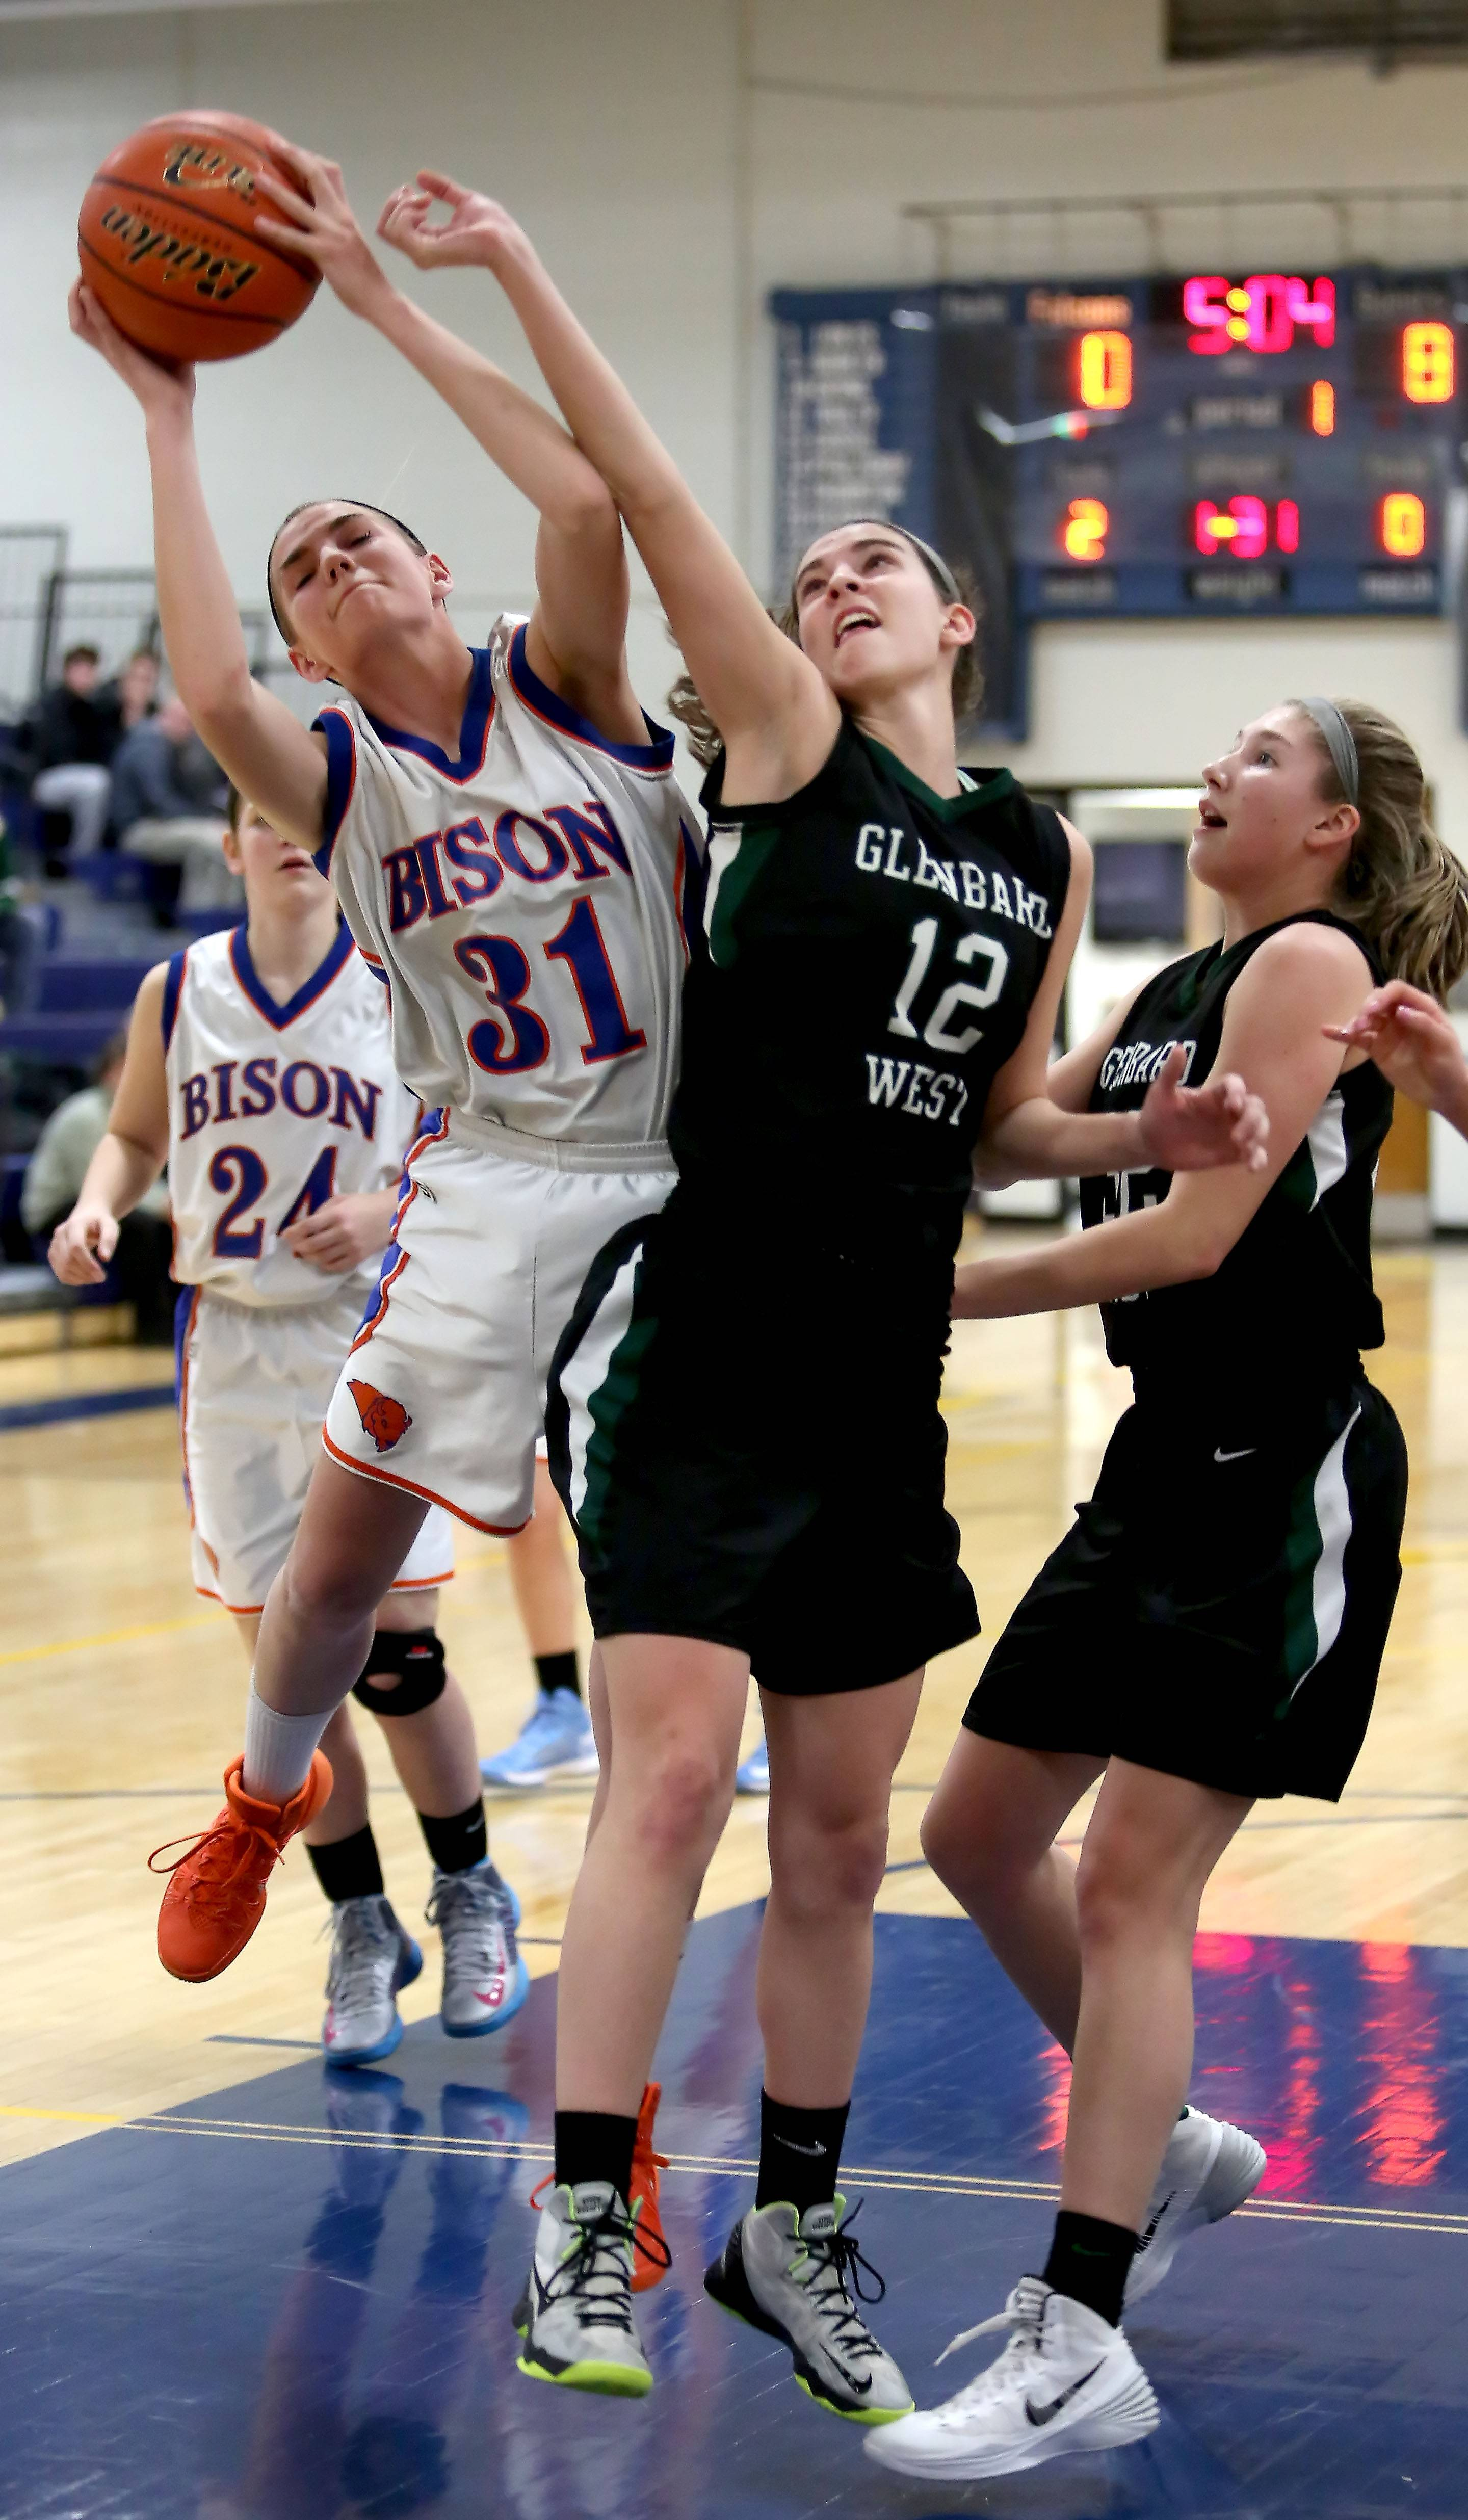 Fenton's Dana Fritz, left, and Glenbard West's Marisa Vivodago reach for a rebound in Monday's regional basketball game at Wheaton North.